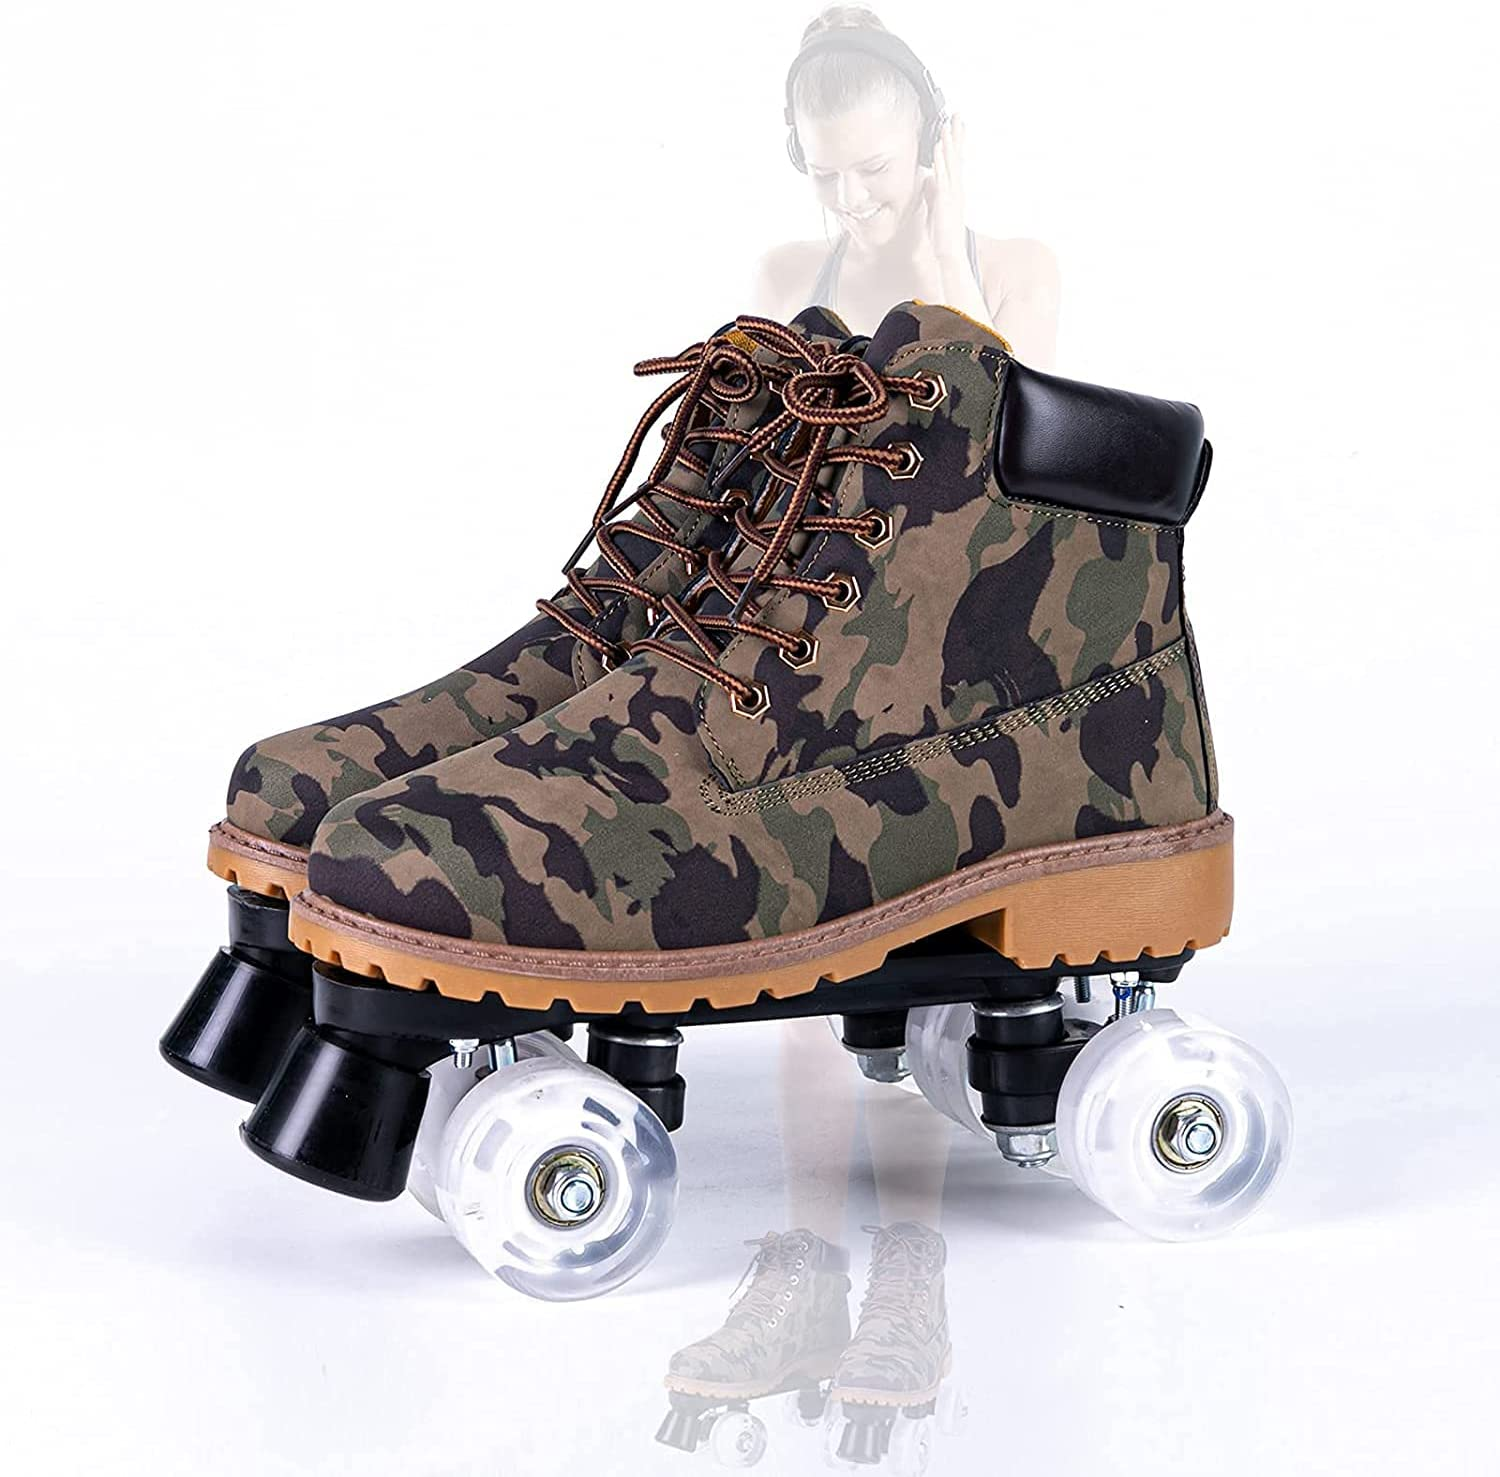 ADSHCEI 5 ☆ popular Roller Skating Shoes are for General Translated Suitable Double-Row